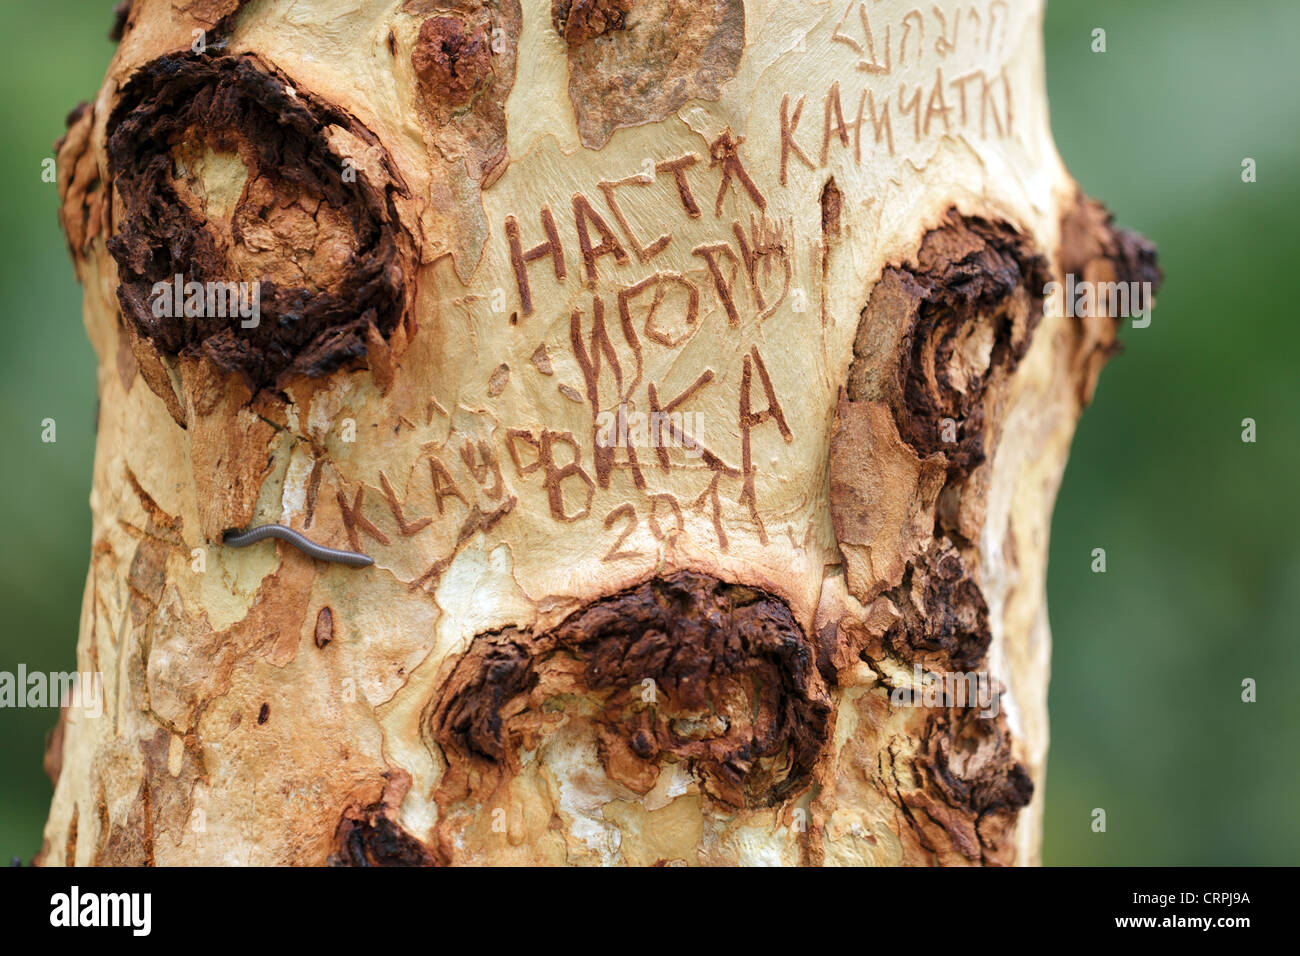 Thai carved writings on tree trunk - Stock Image